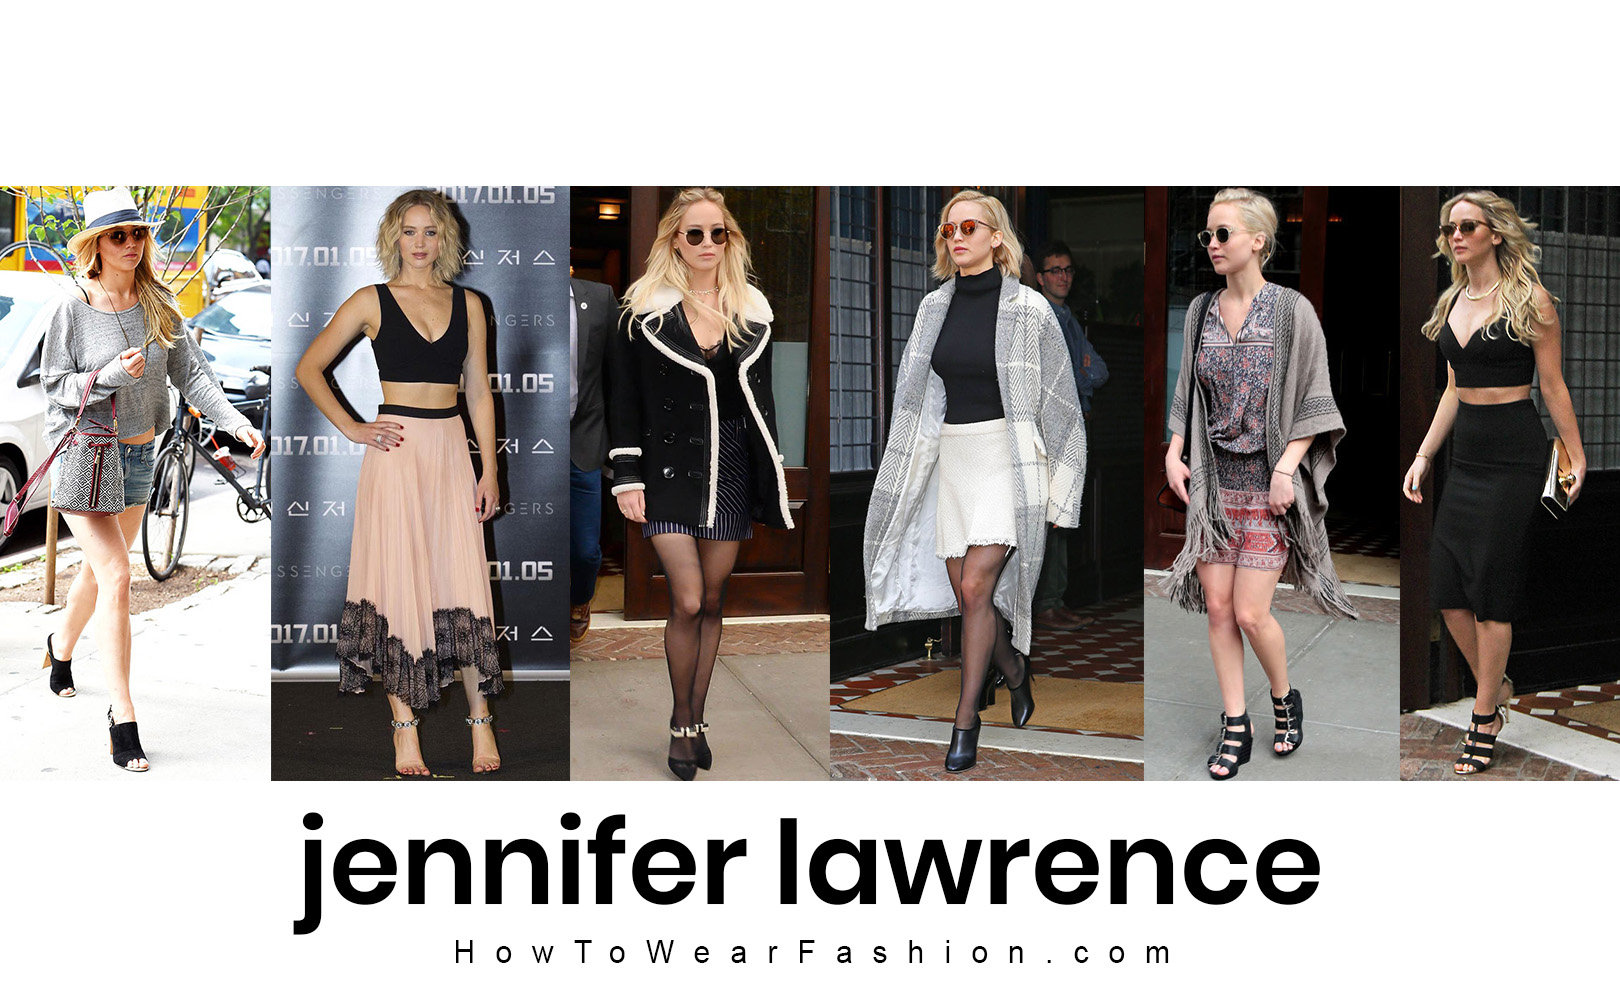 Jennifer Lawrence's fashion style! See all her best outfit looks here.